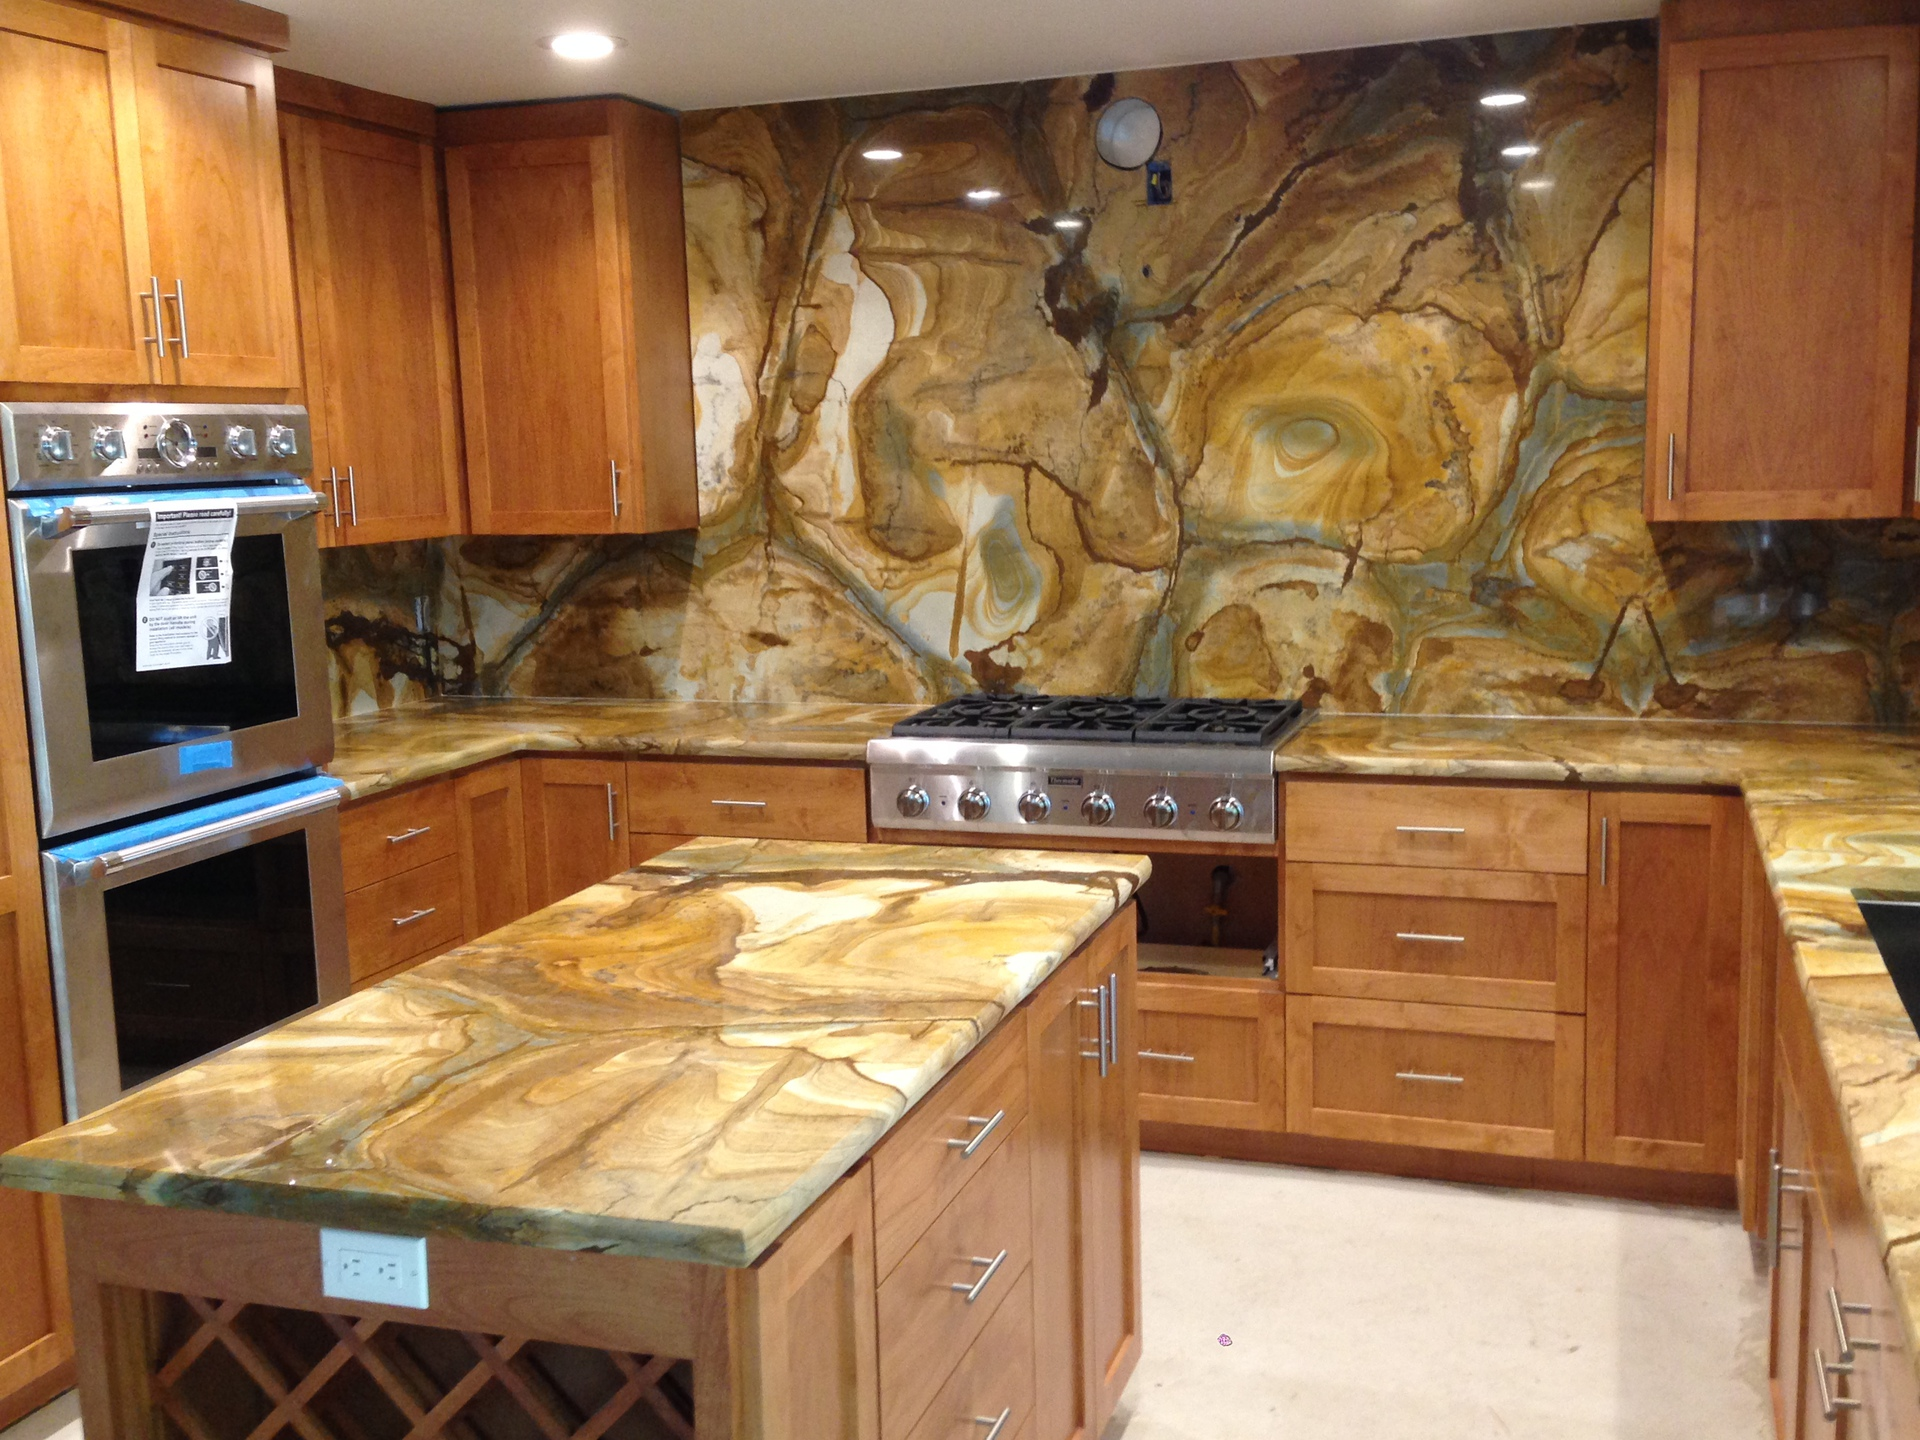 granite kitchen countertops Oakland, CA